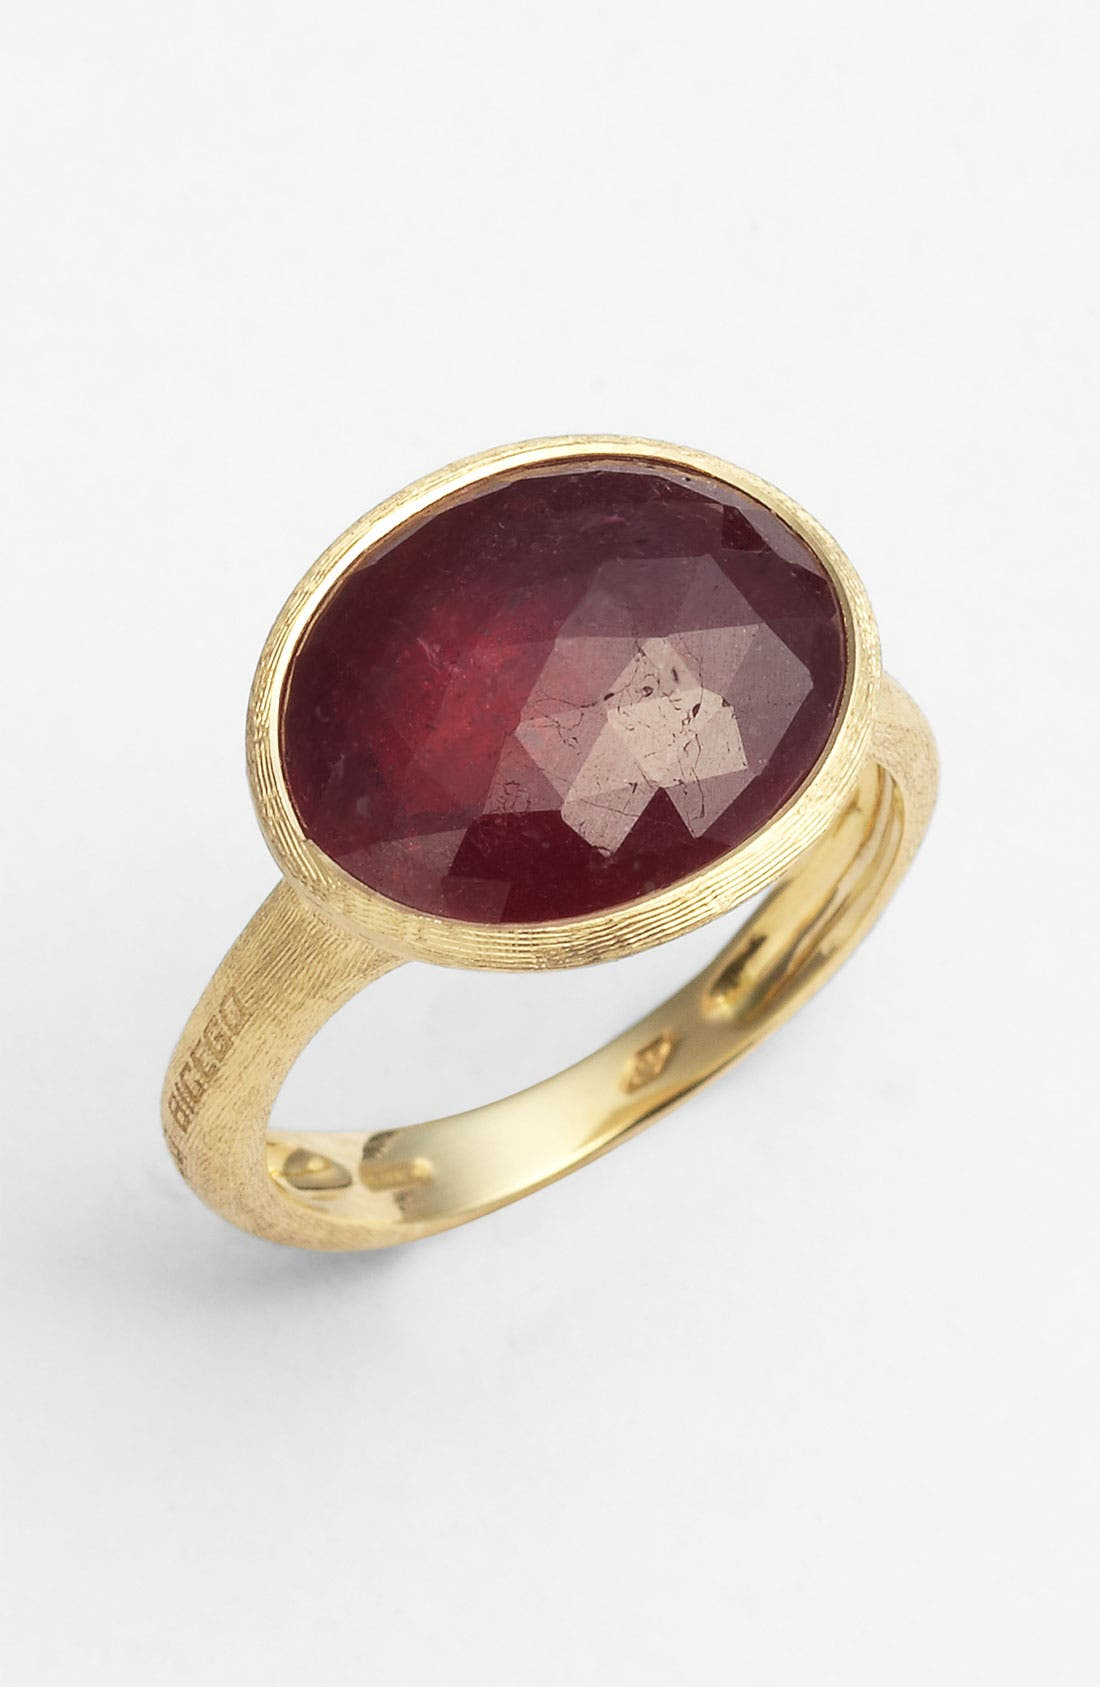 Main Image - Marco Bicego 'Siviglia' Faceted Sapphire Ring